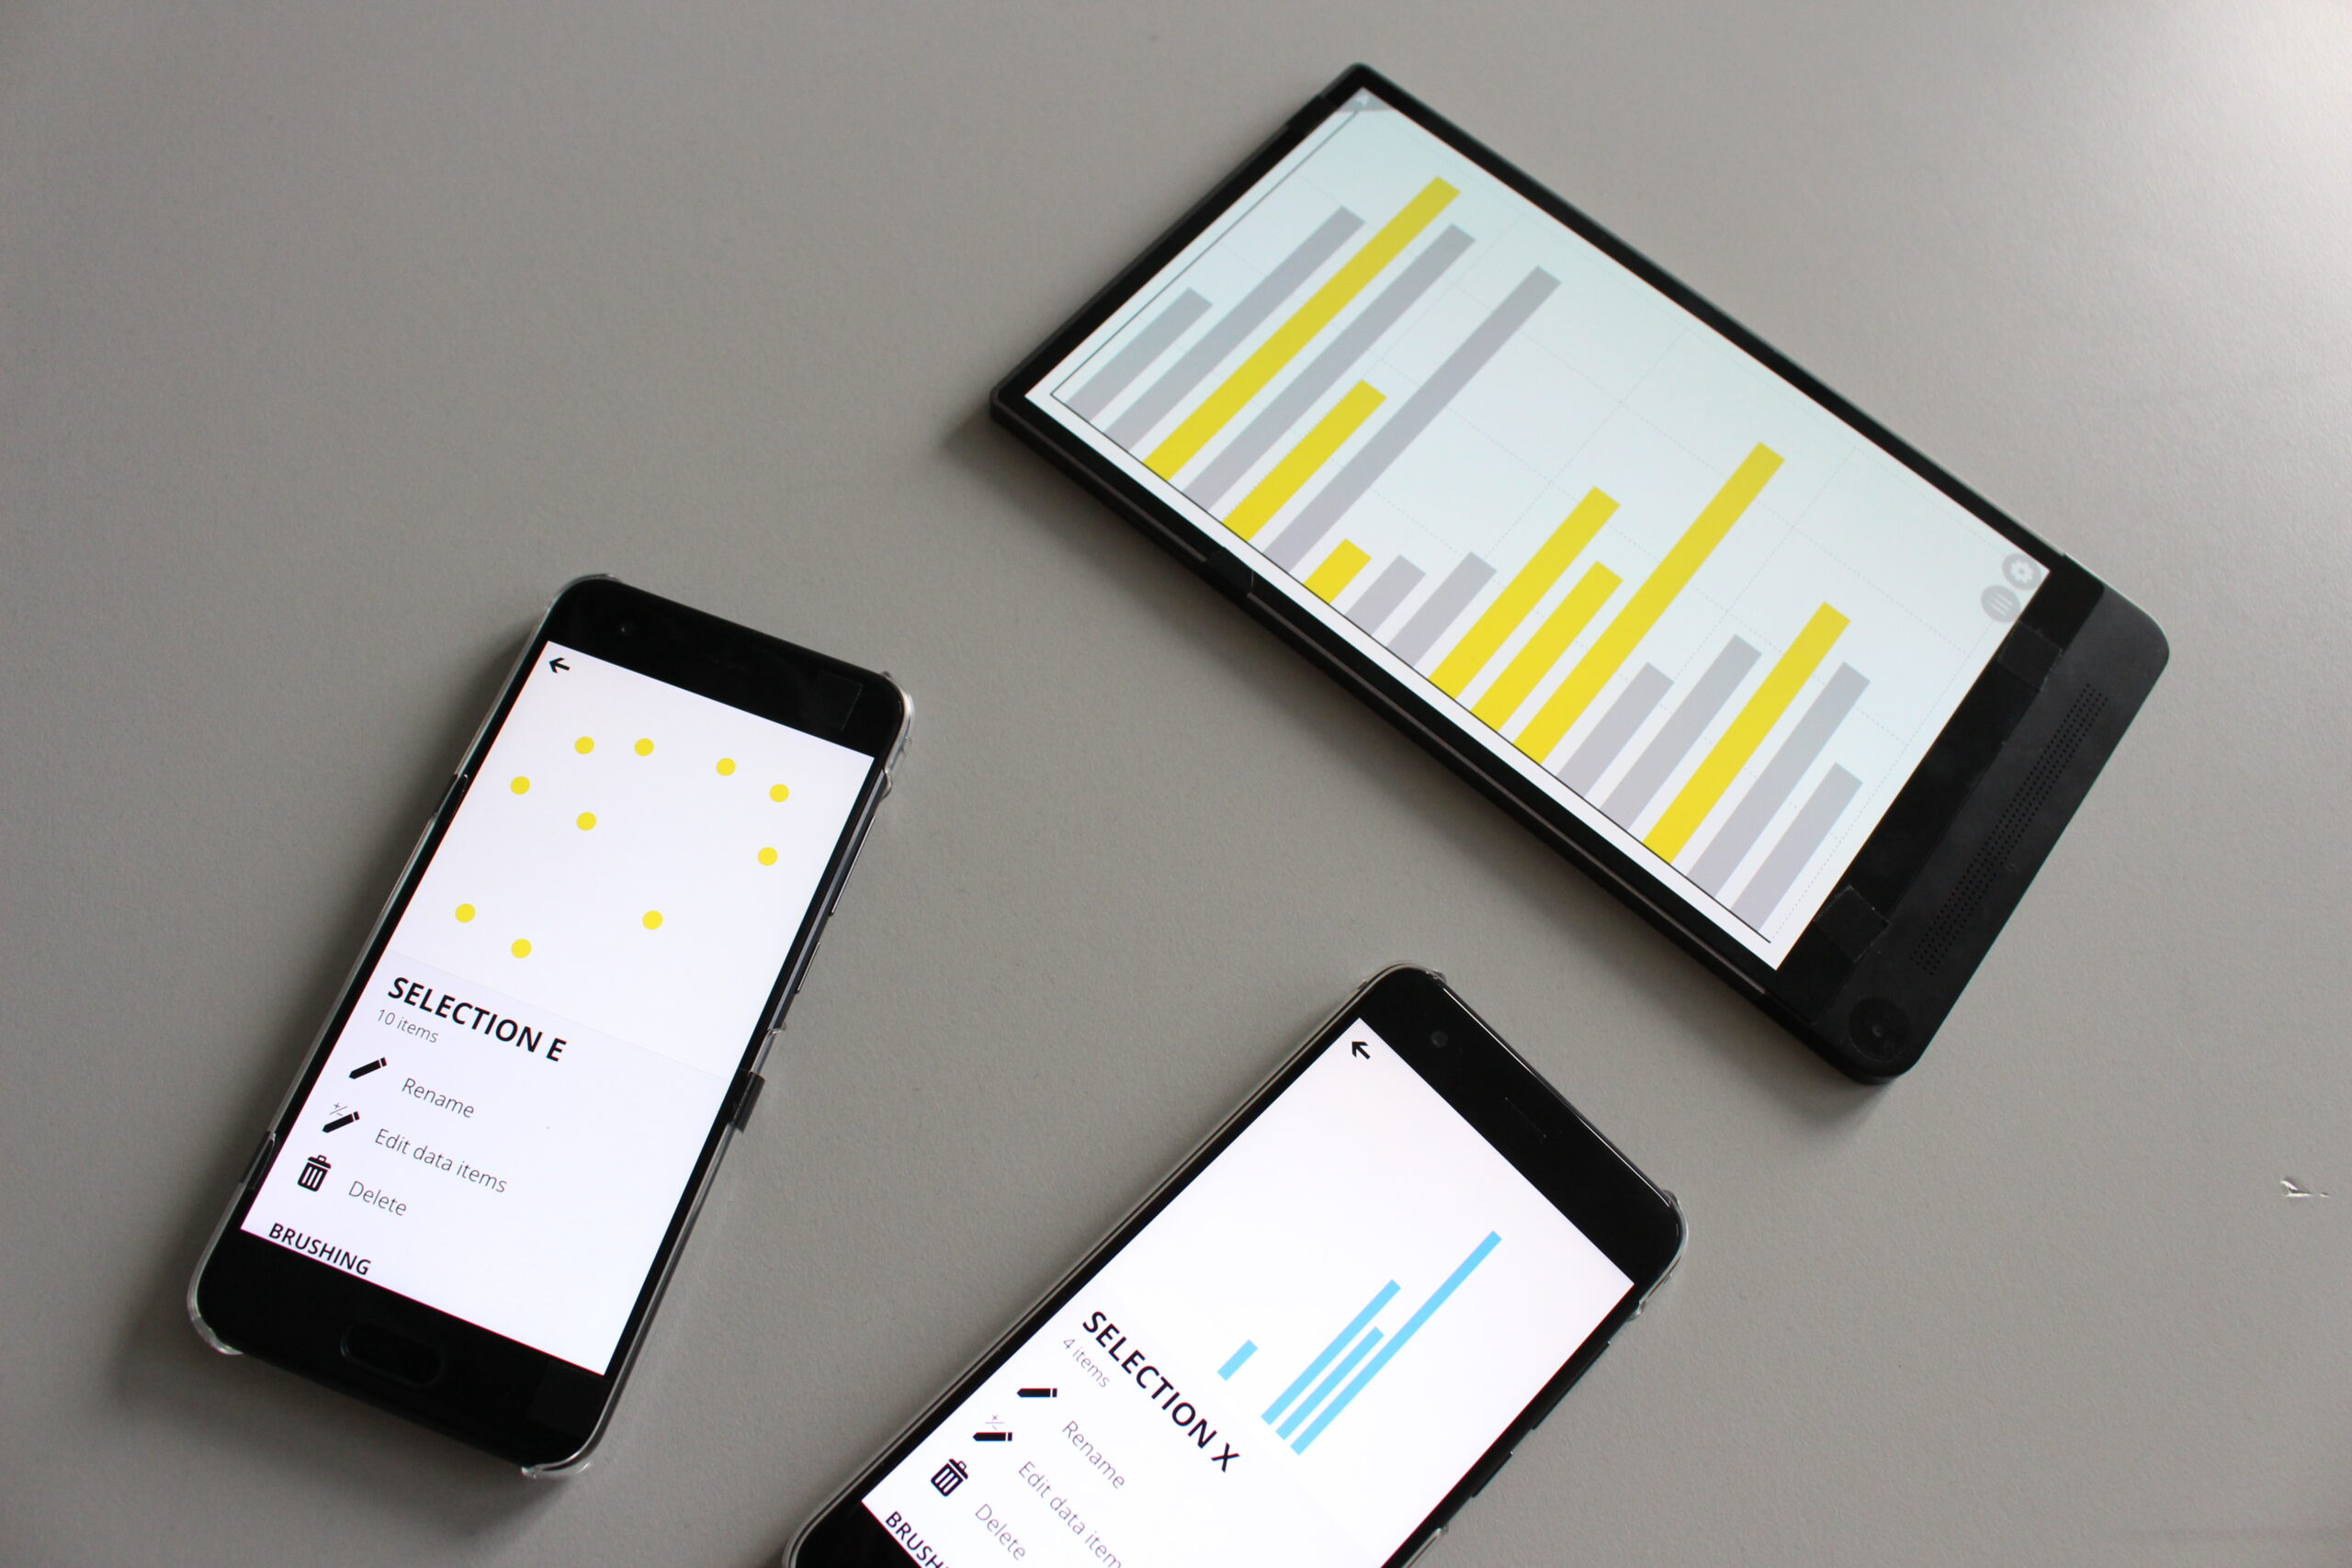 Three devices showing the merged selection in the visualization.